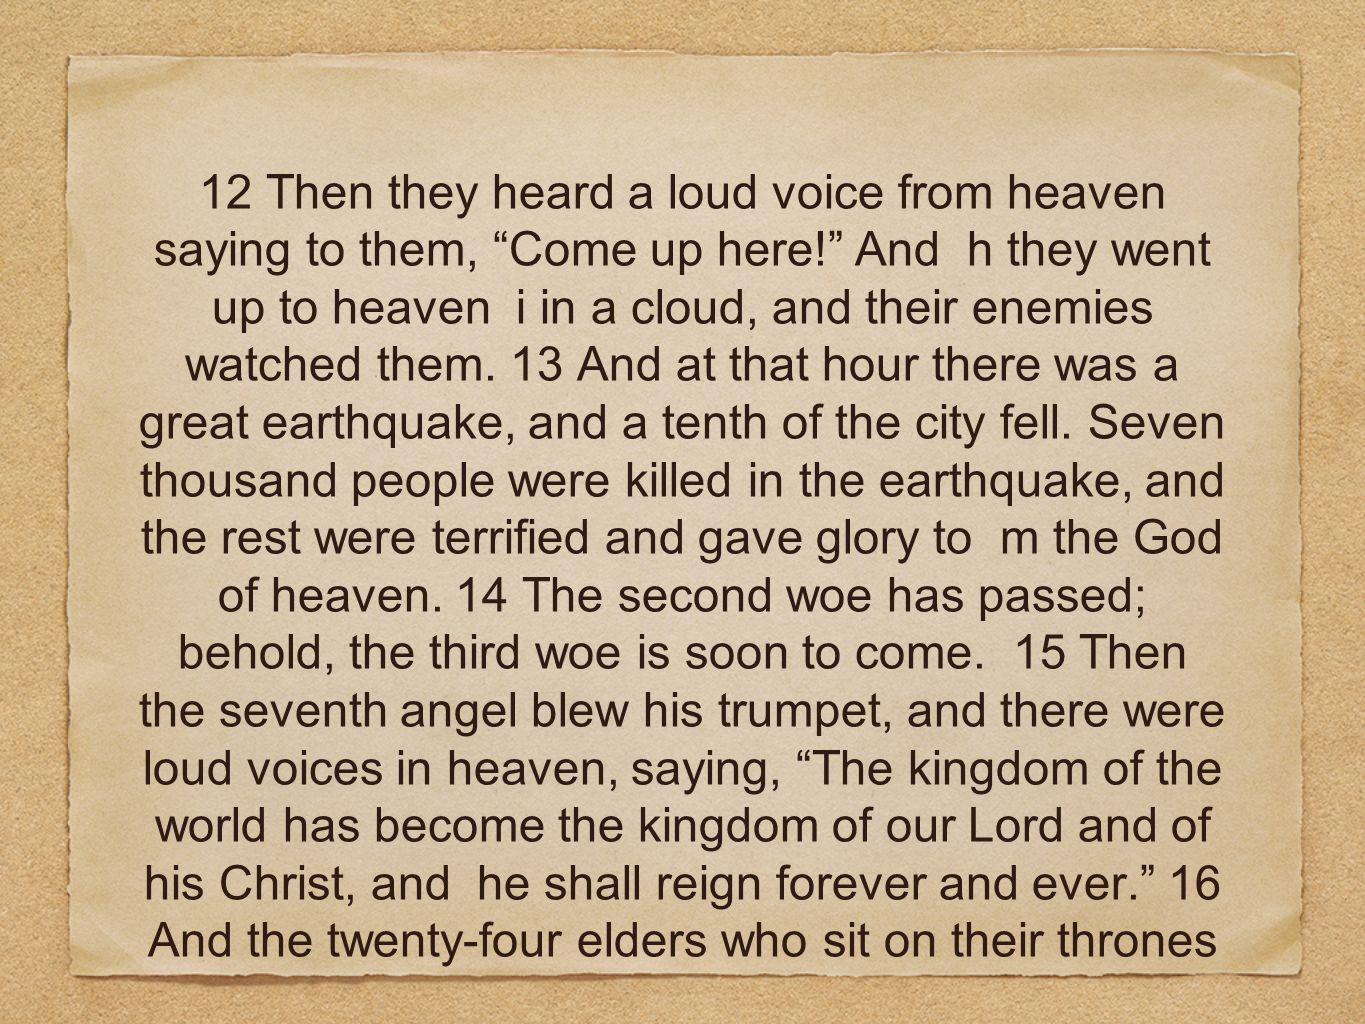 12 Then they heard a loud voice from heaven saying to them, Come up here.